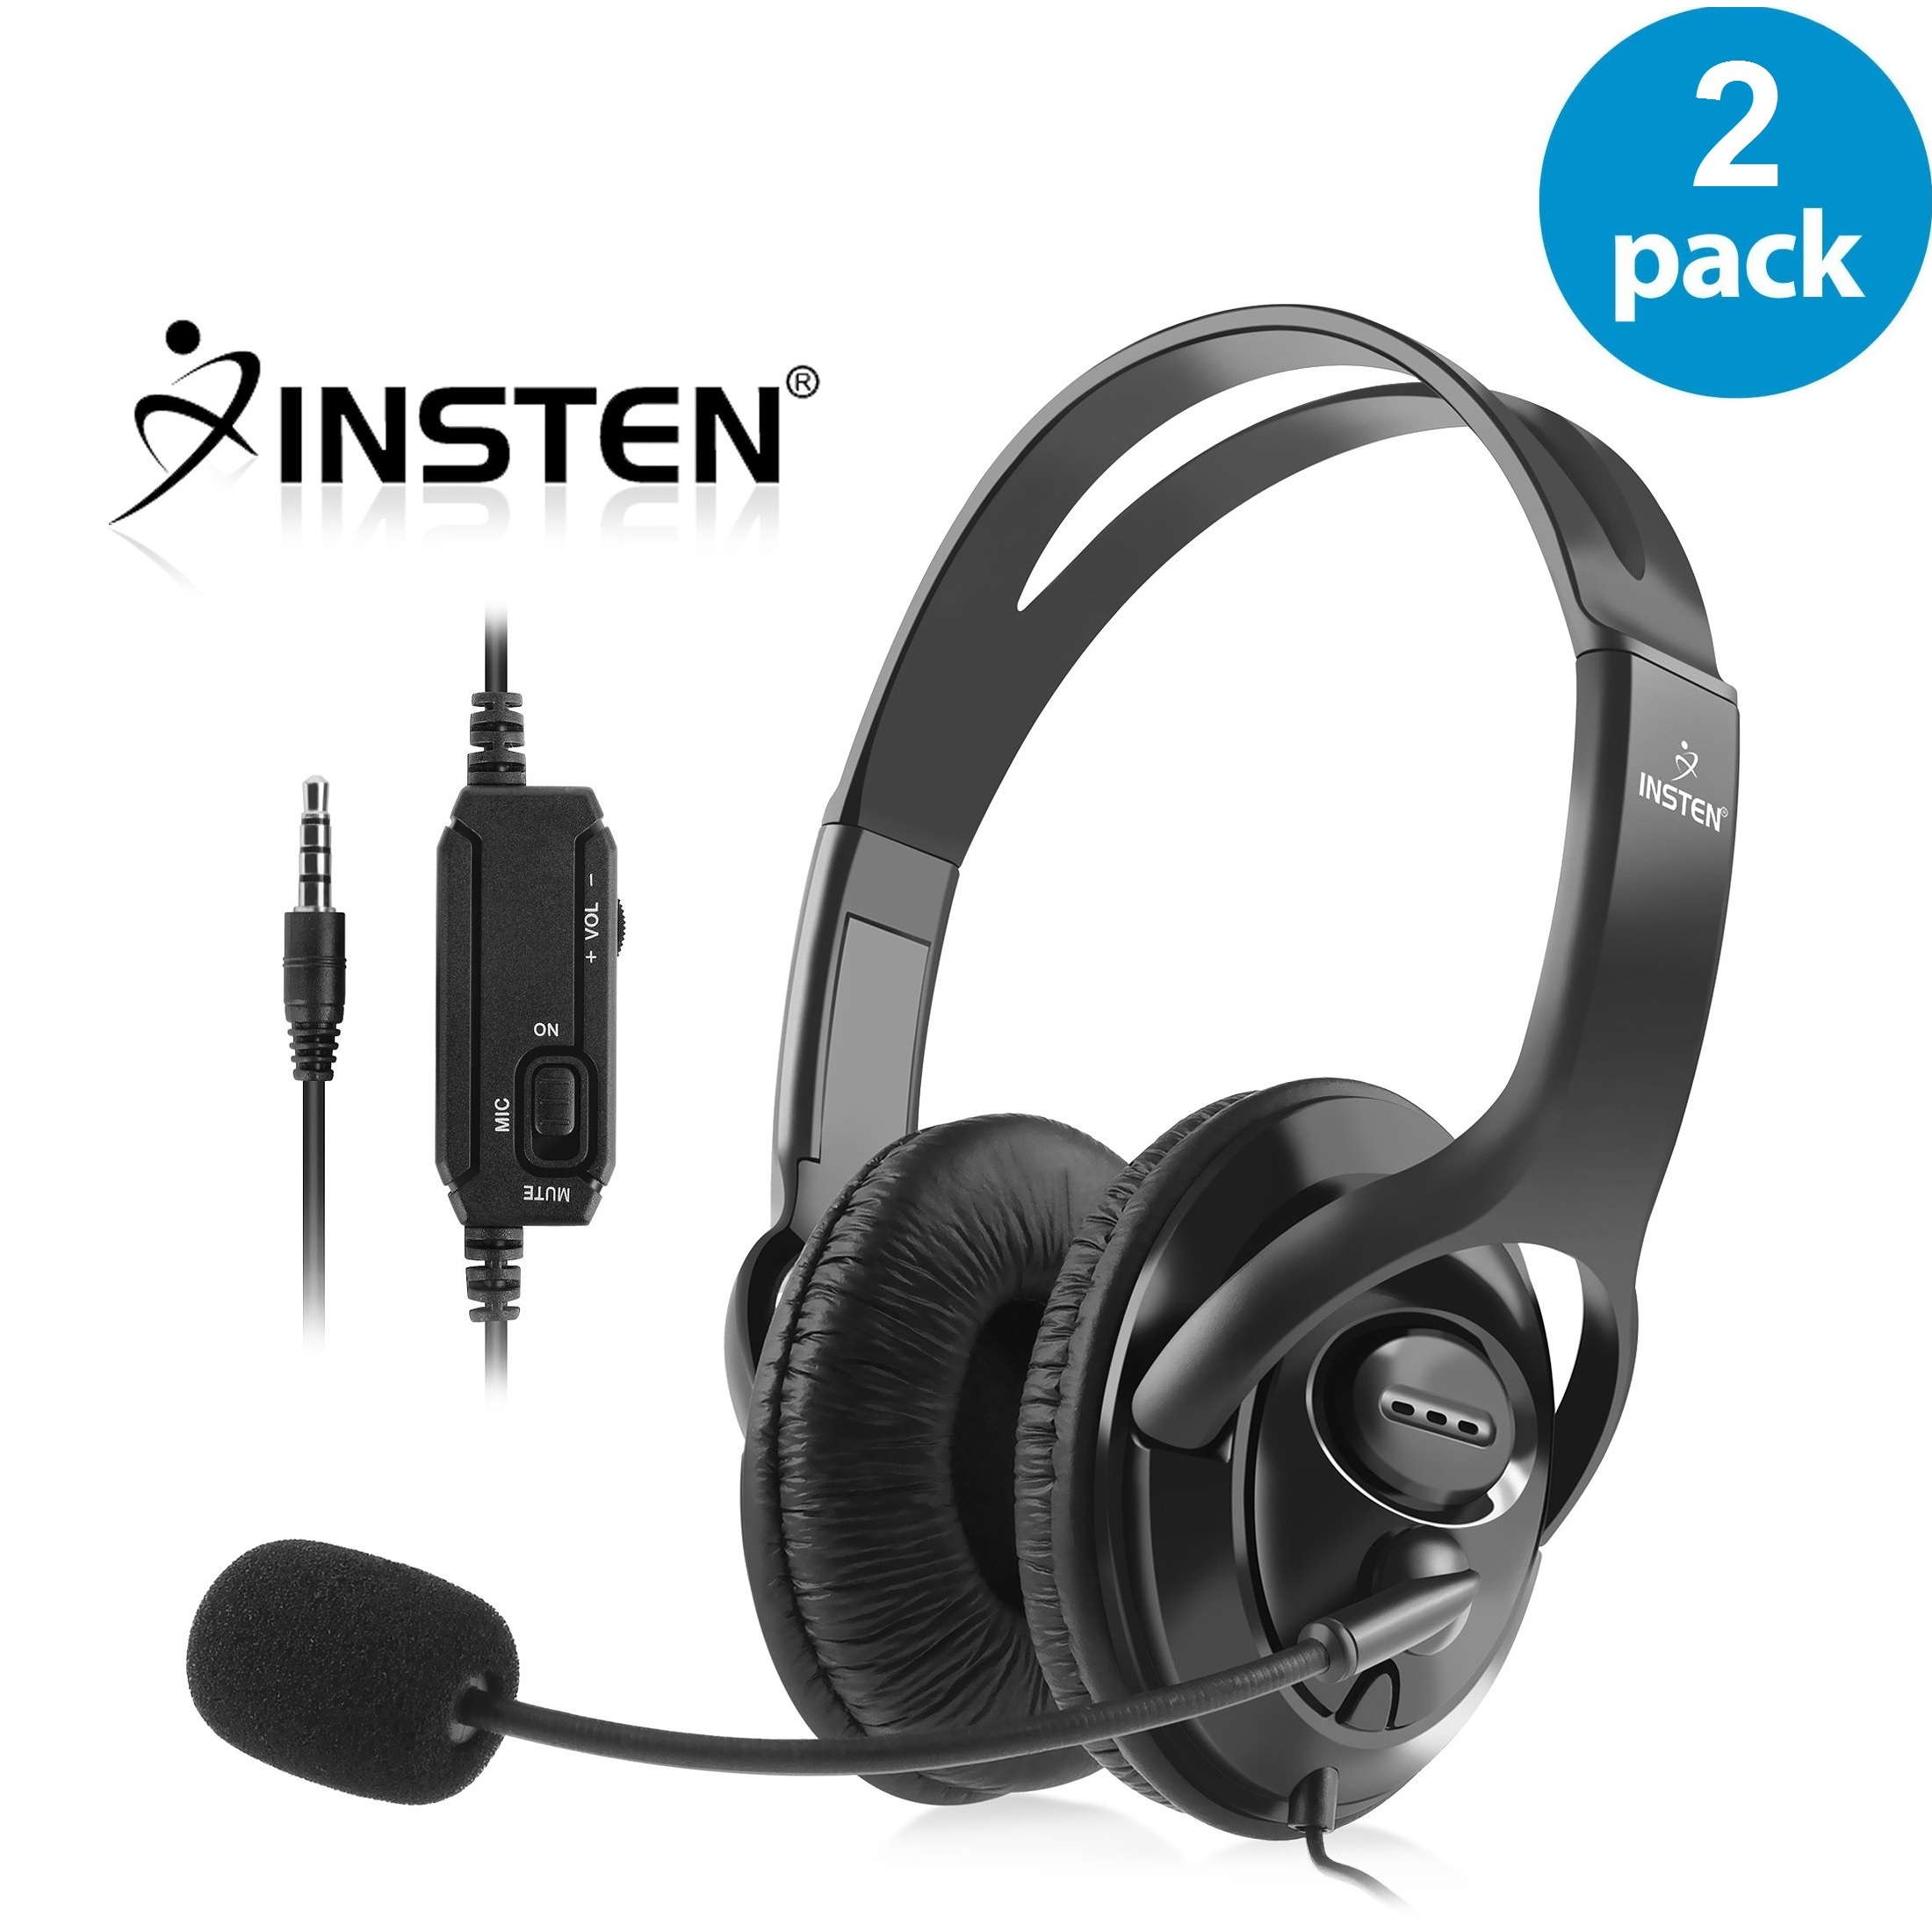 Insten 2x Wired Gaming Headset Headphone with Mic Microphone for Sony PS4 PlayStation 4 (2-Pack Bundle)